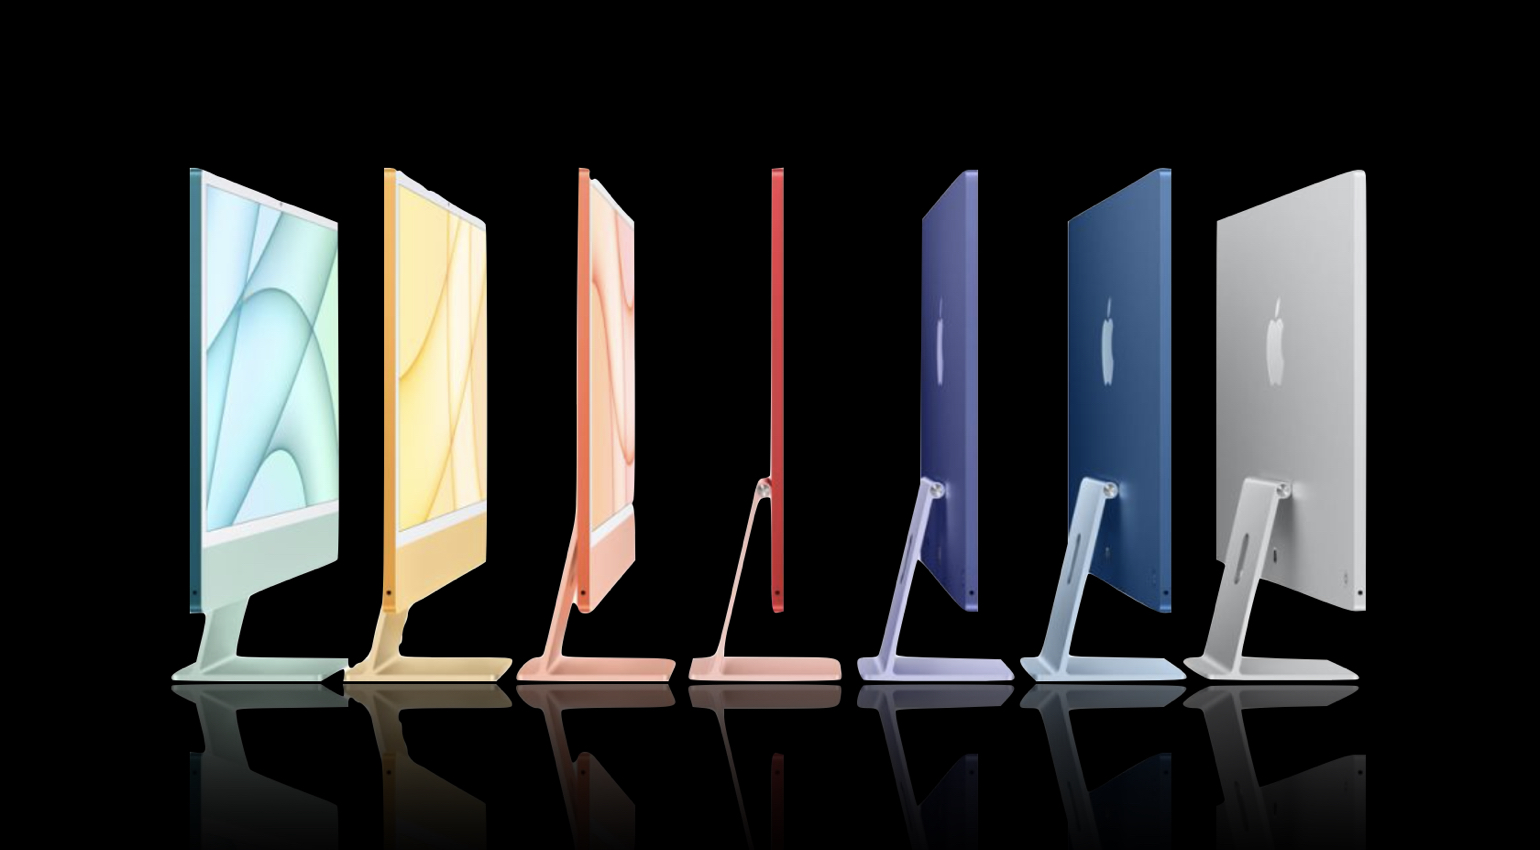 Apple adds the M1 chip to a new iMac 24